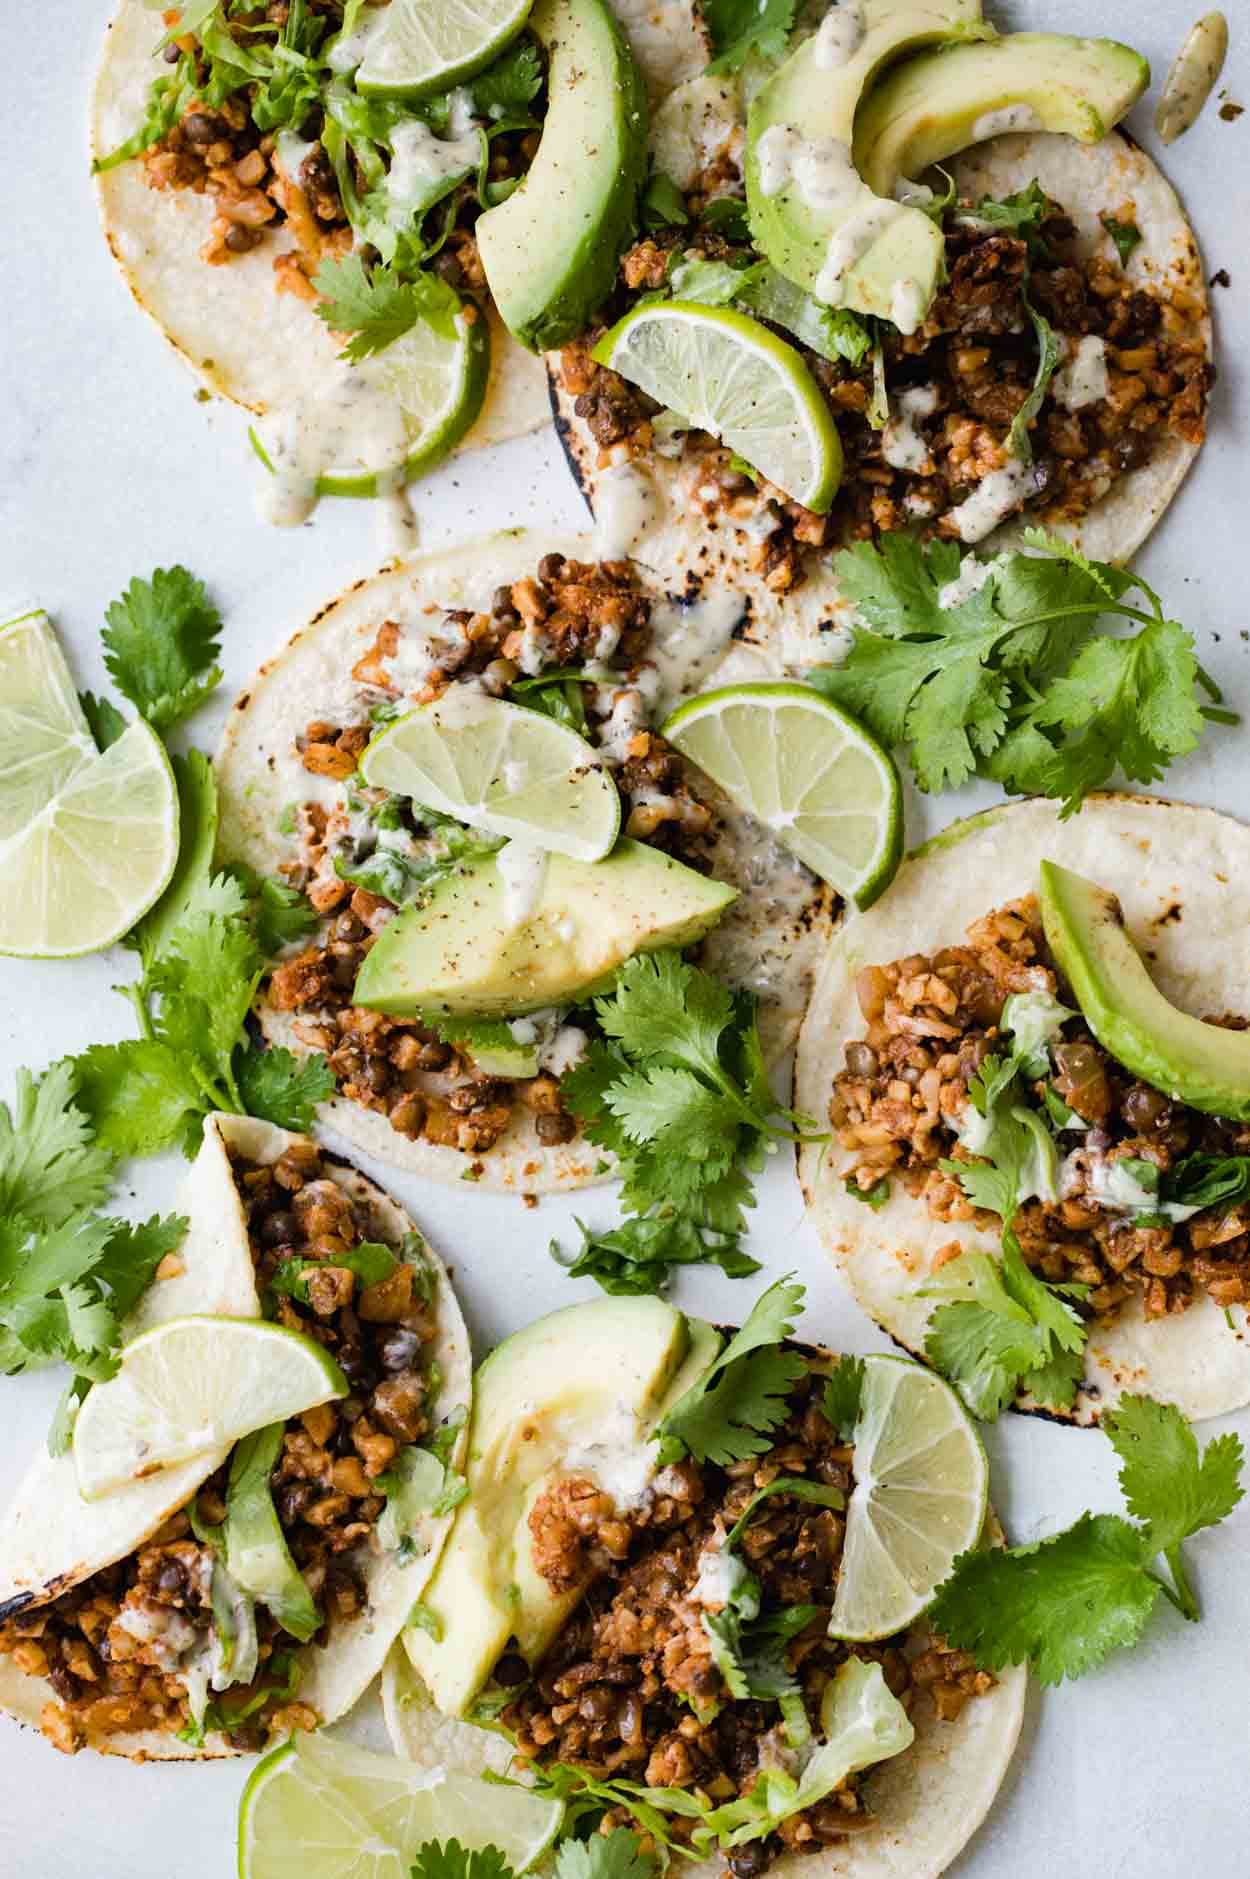 Cauliflower rice and lentil tacos on corn tortillas with limes, avocado and cilantro on a white board